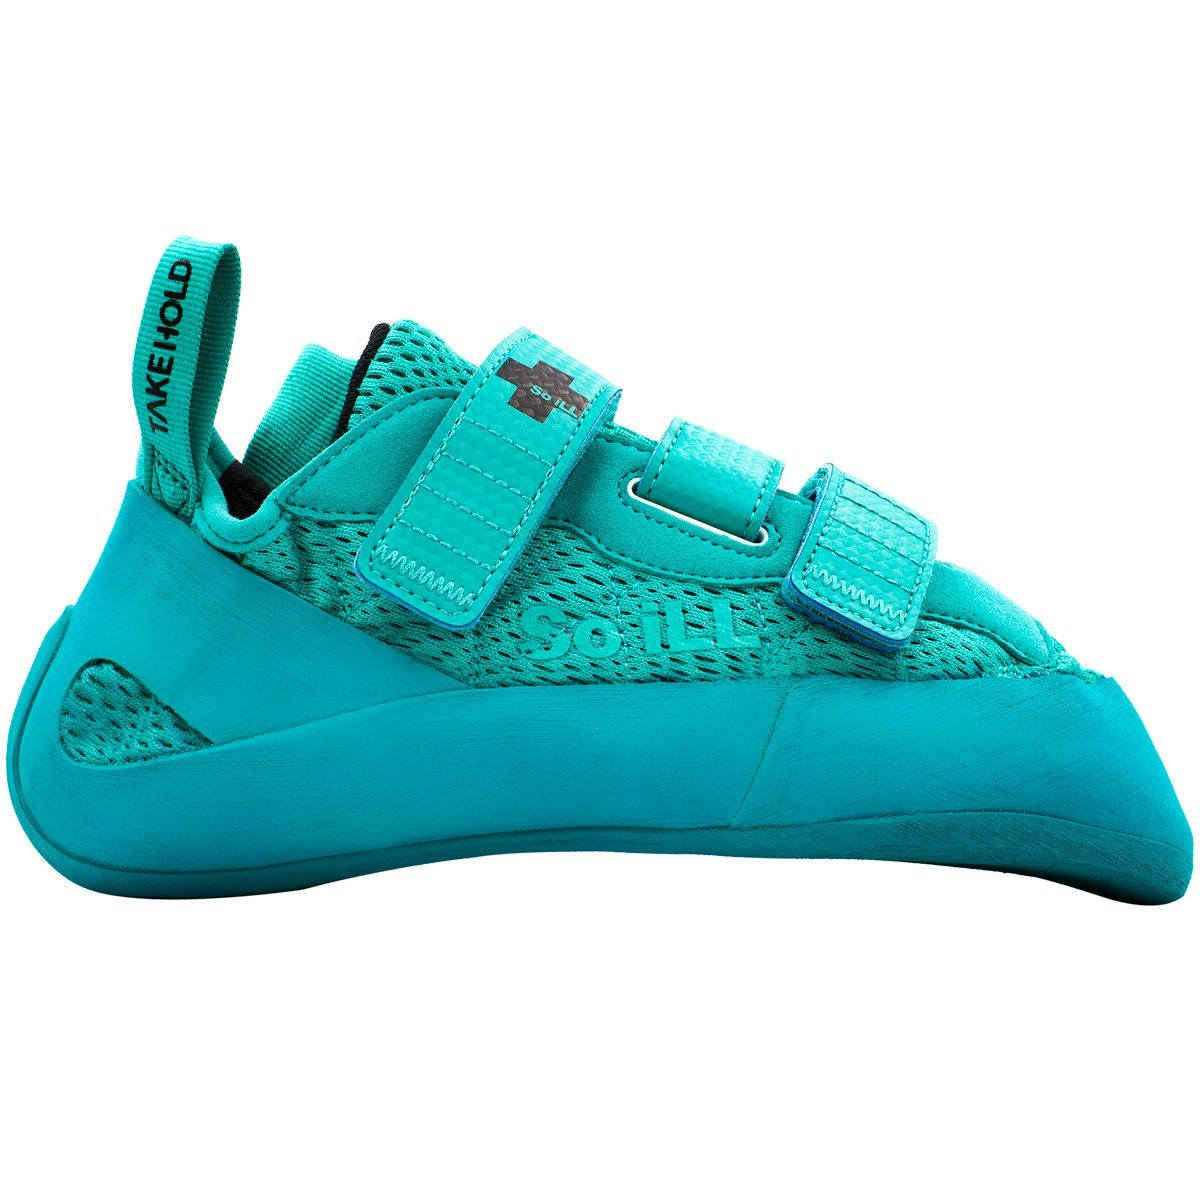 So iLL Runner Rock Climbing Shoe in Teal – Side View